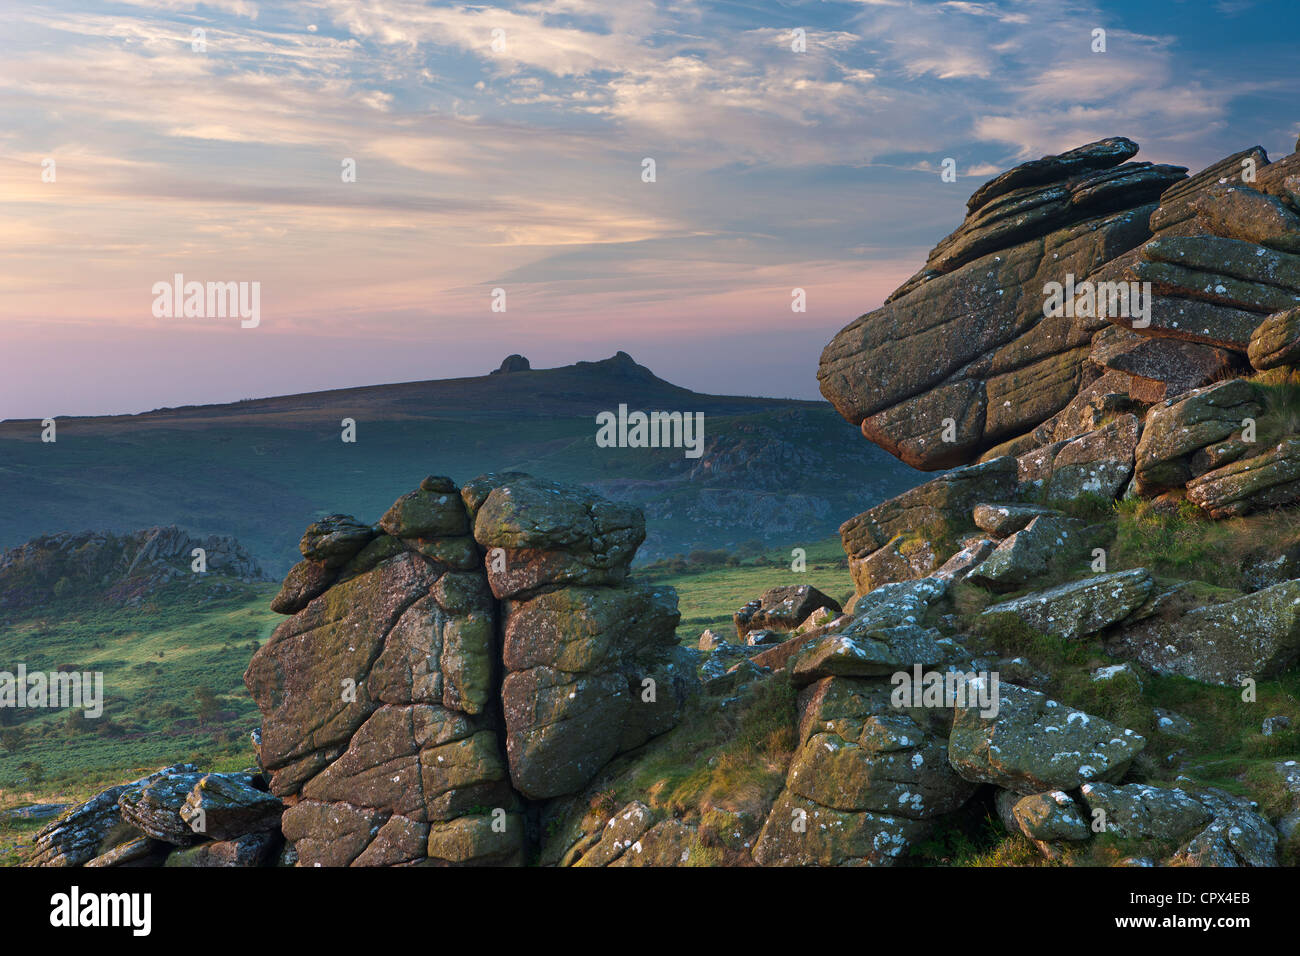 Hound Tor at dawn, with Hay Tor beyond, Dartmoor, Devon, England, UK - Stock Image